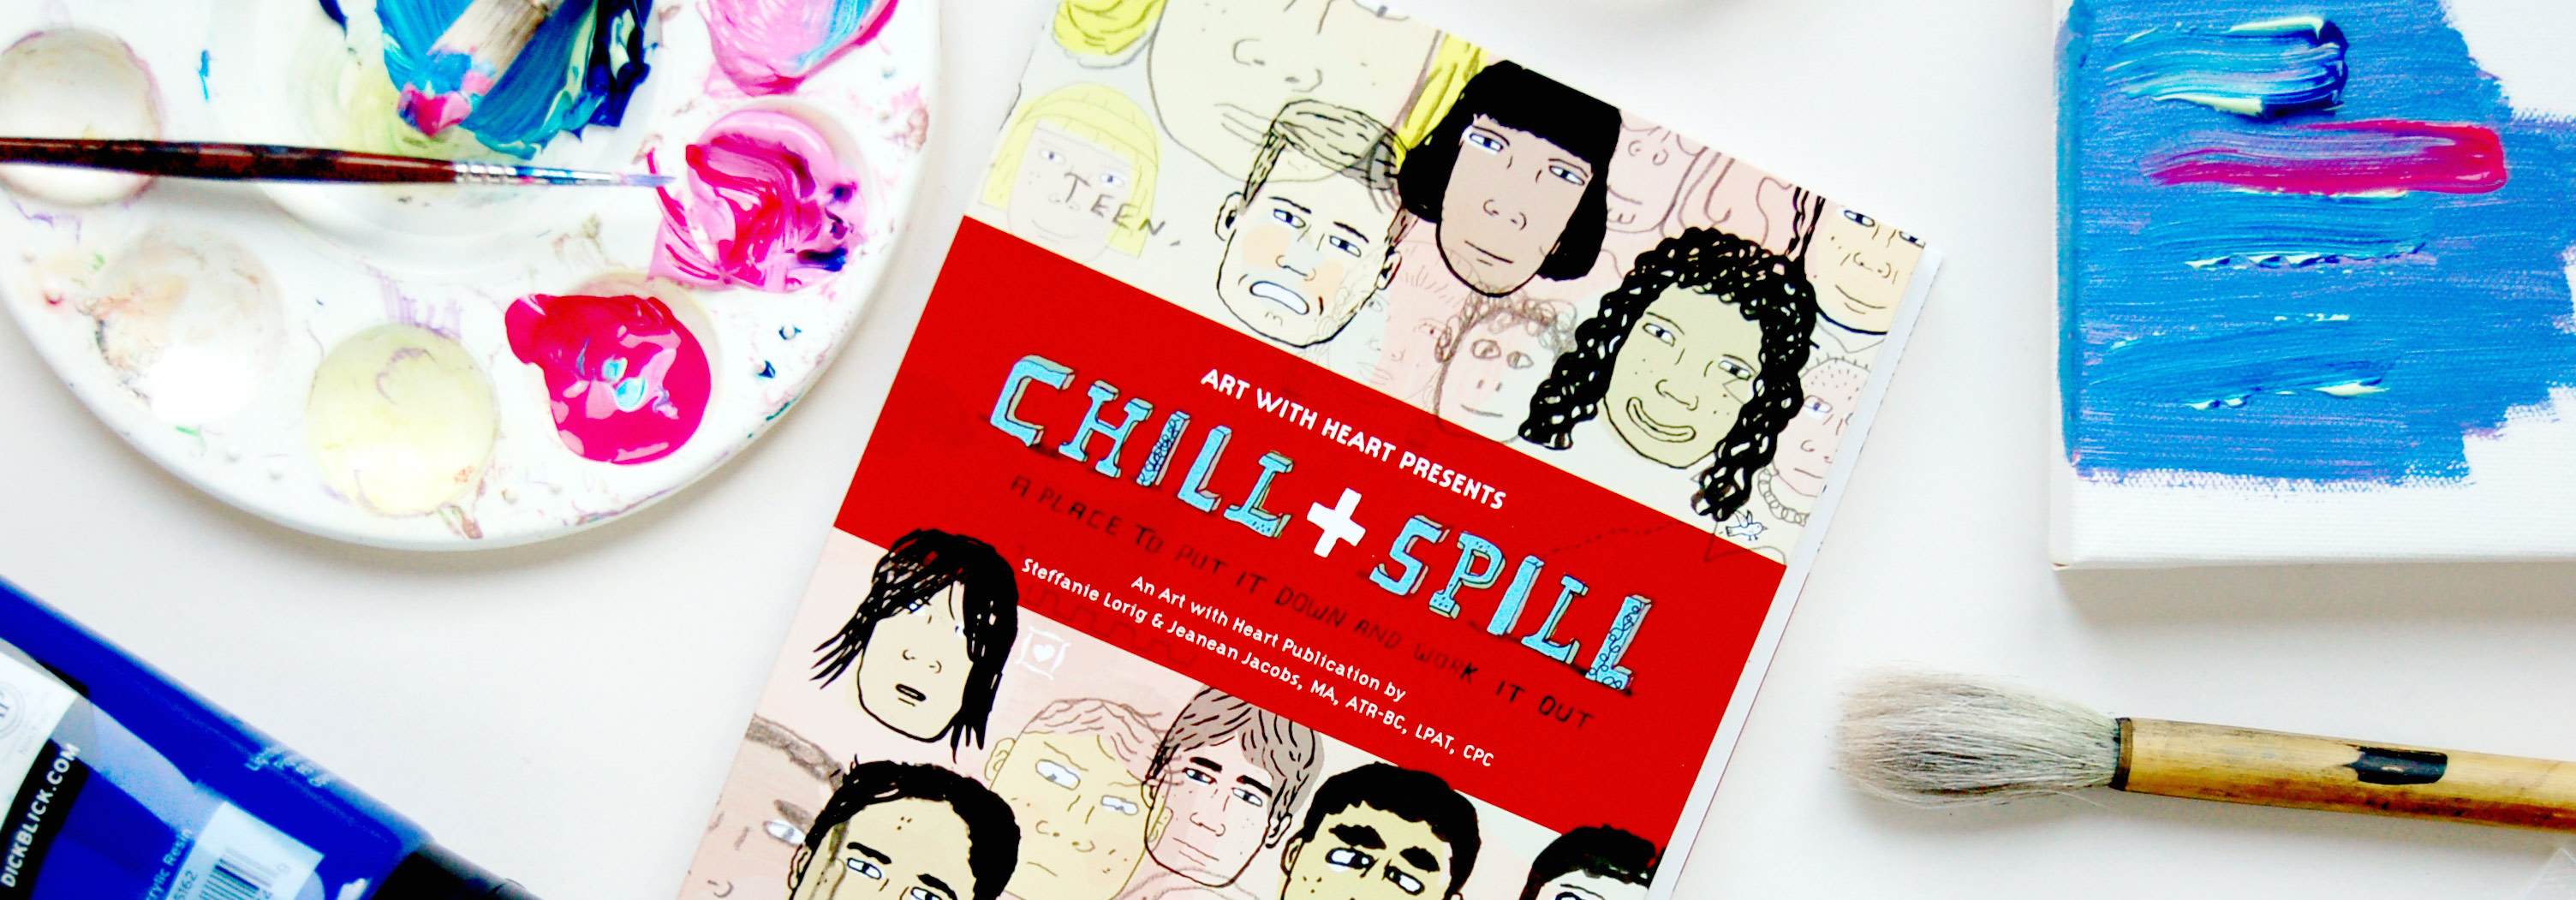 Chill & Spill Therapeutic Art Activity Book